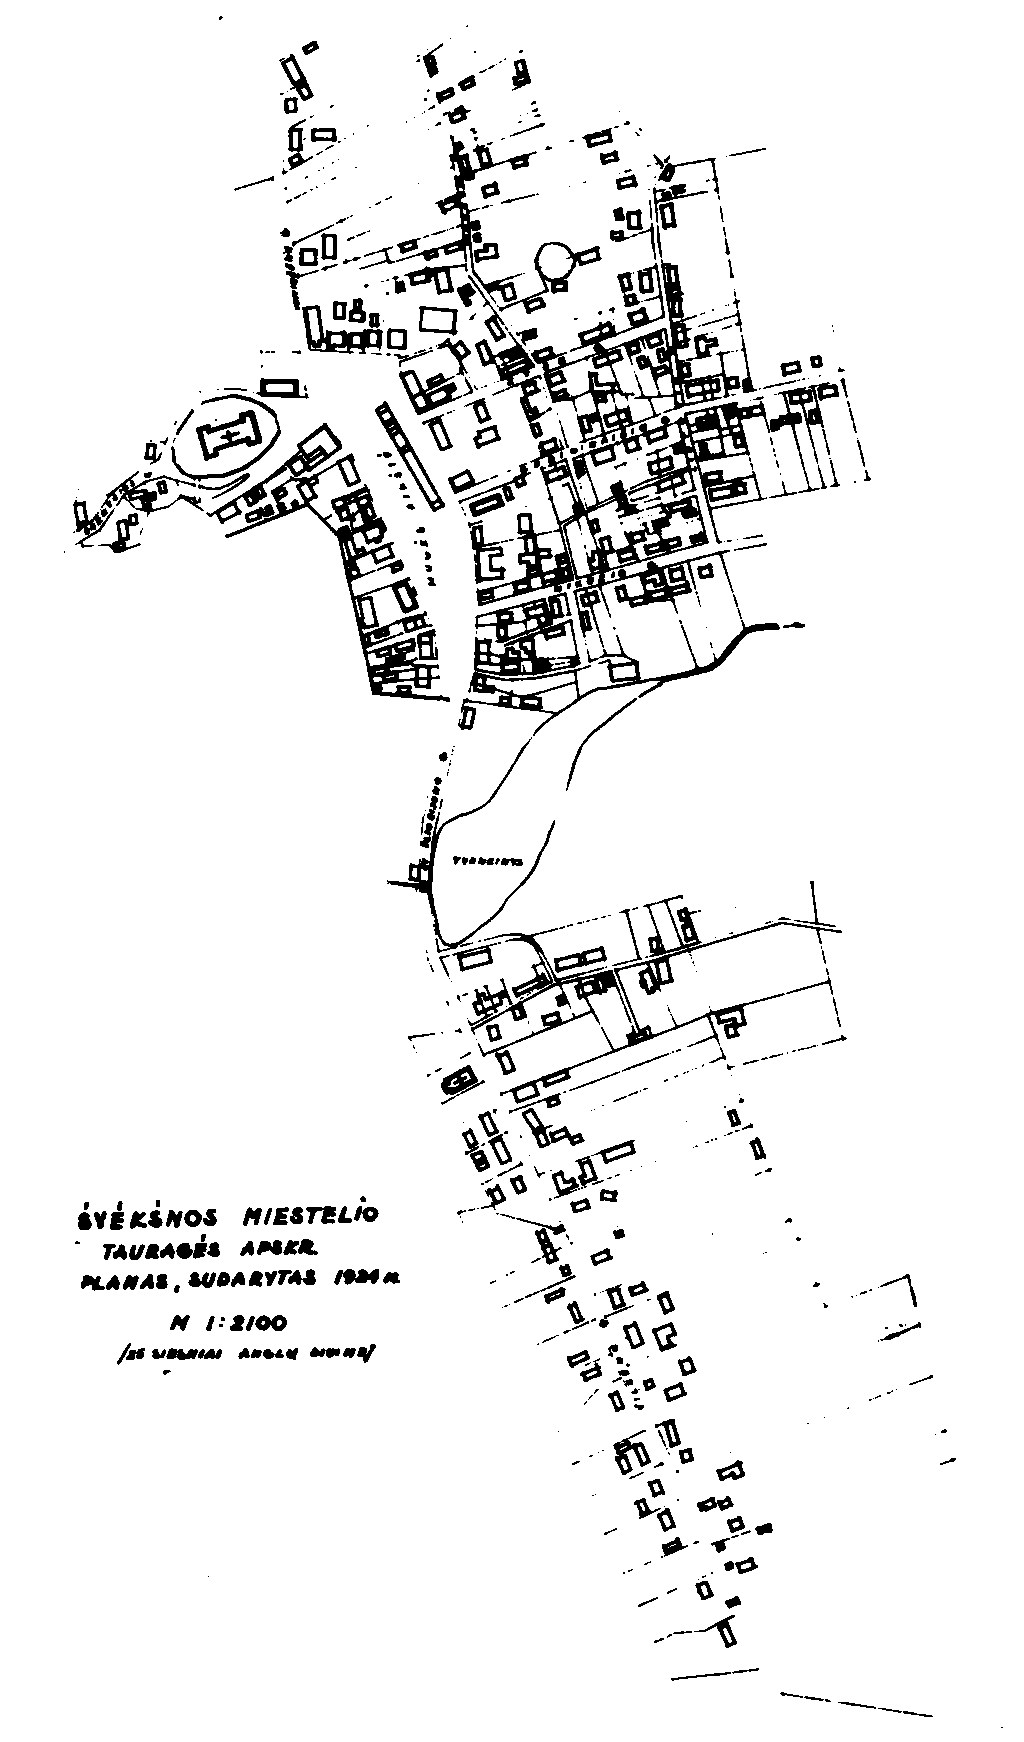 hight resolution of 1924 map